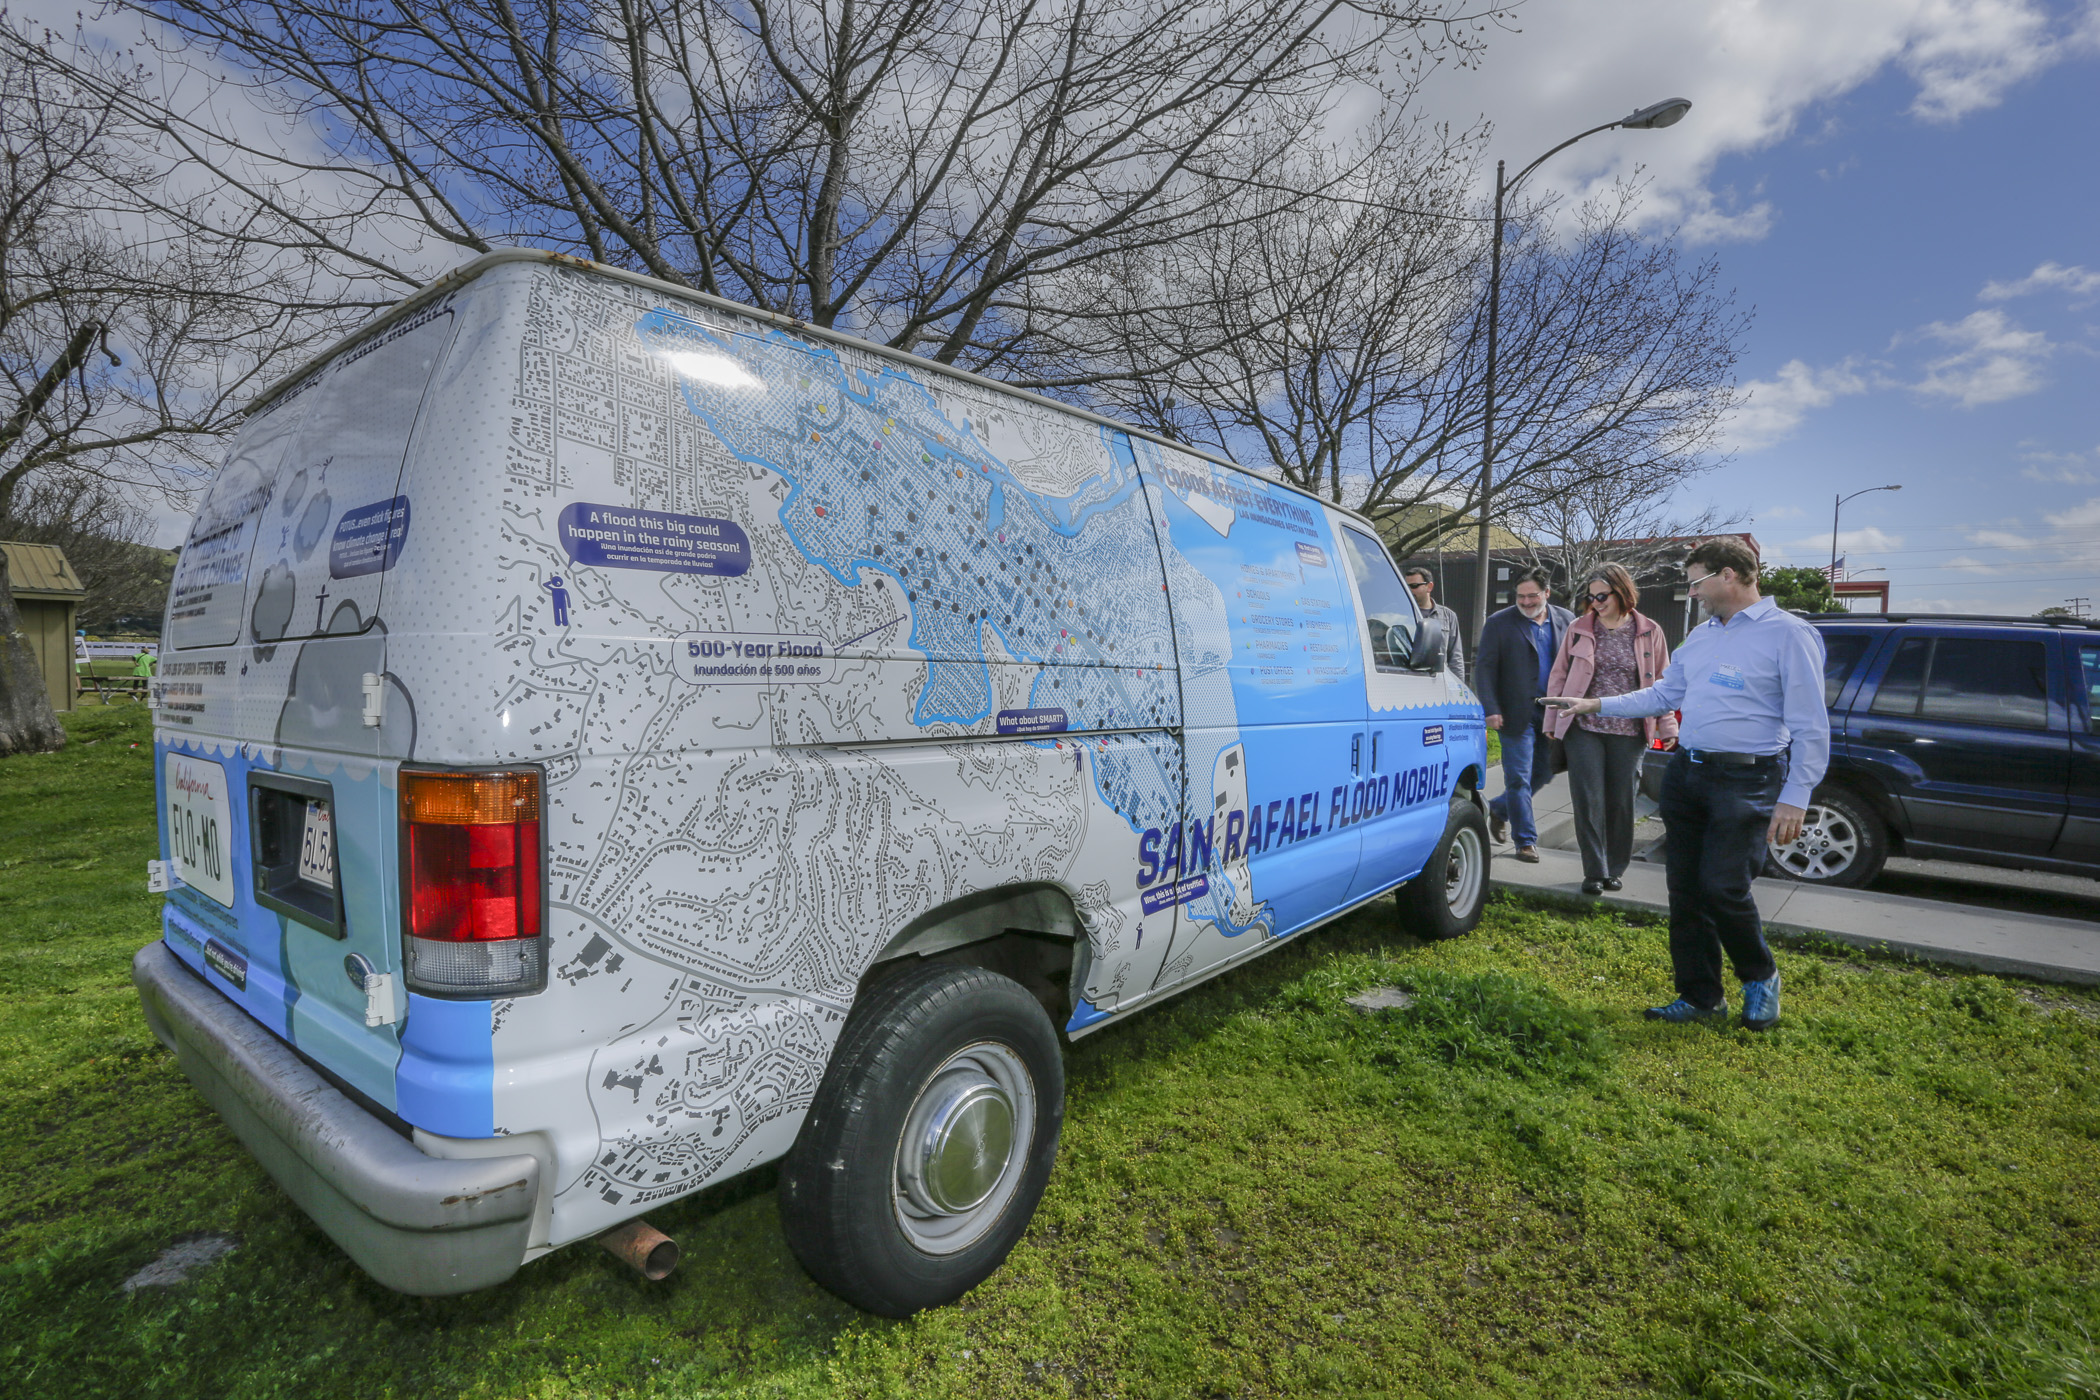 """flo-mo"" - a van designed to raise awareness"